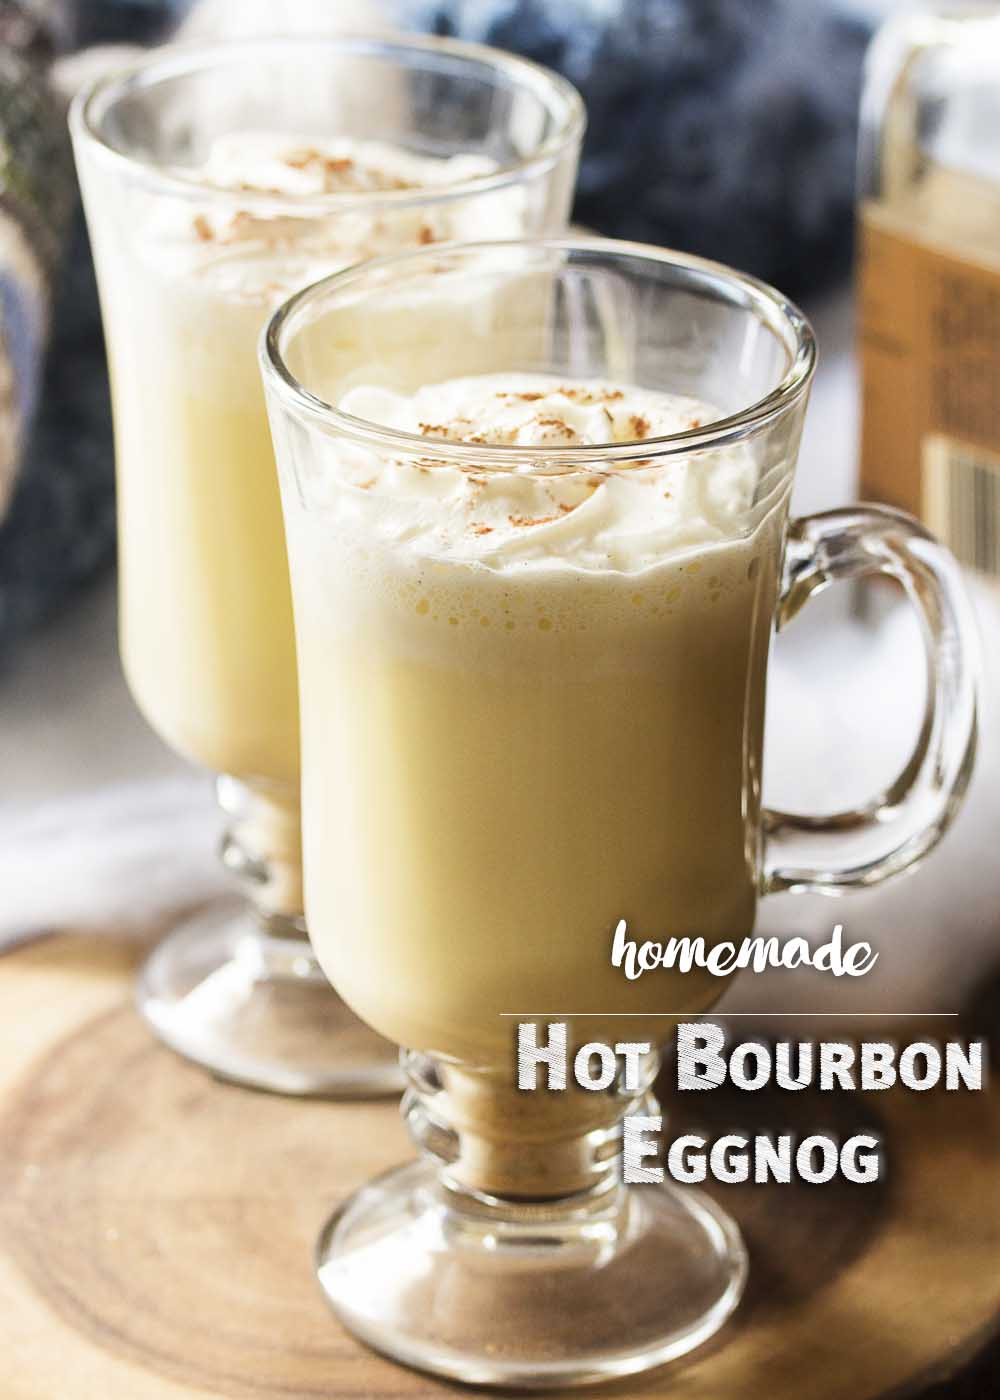 Homemade hot bourbon eggnog is easy to make and will warm you right through. I think it's the perfect drink for cold and snowy days by the fire!   justalittlebitofbacon.com